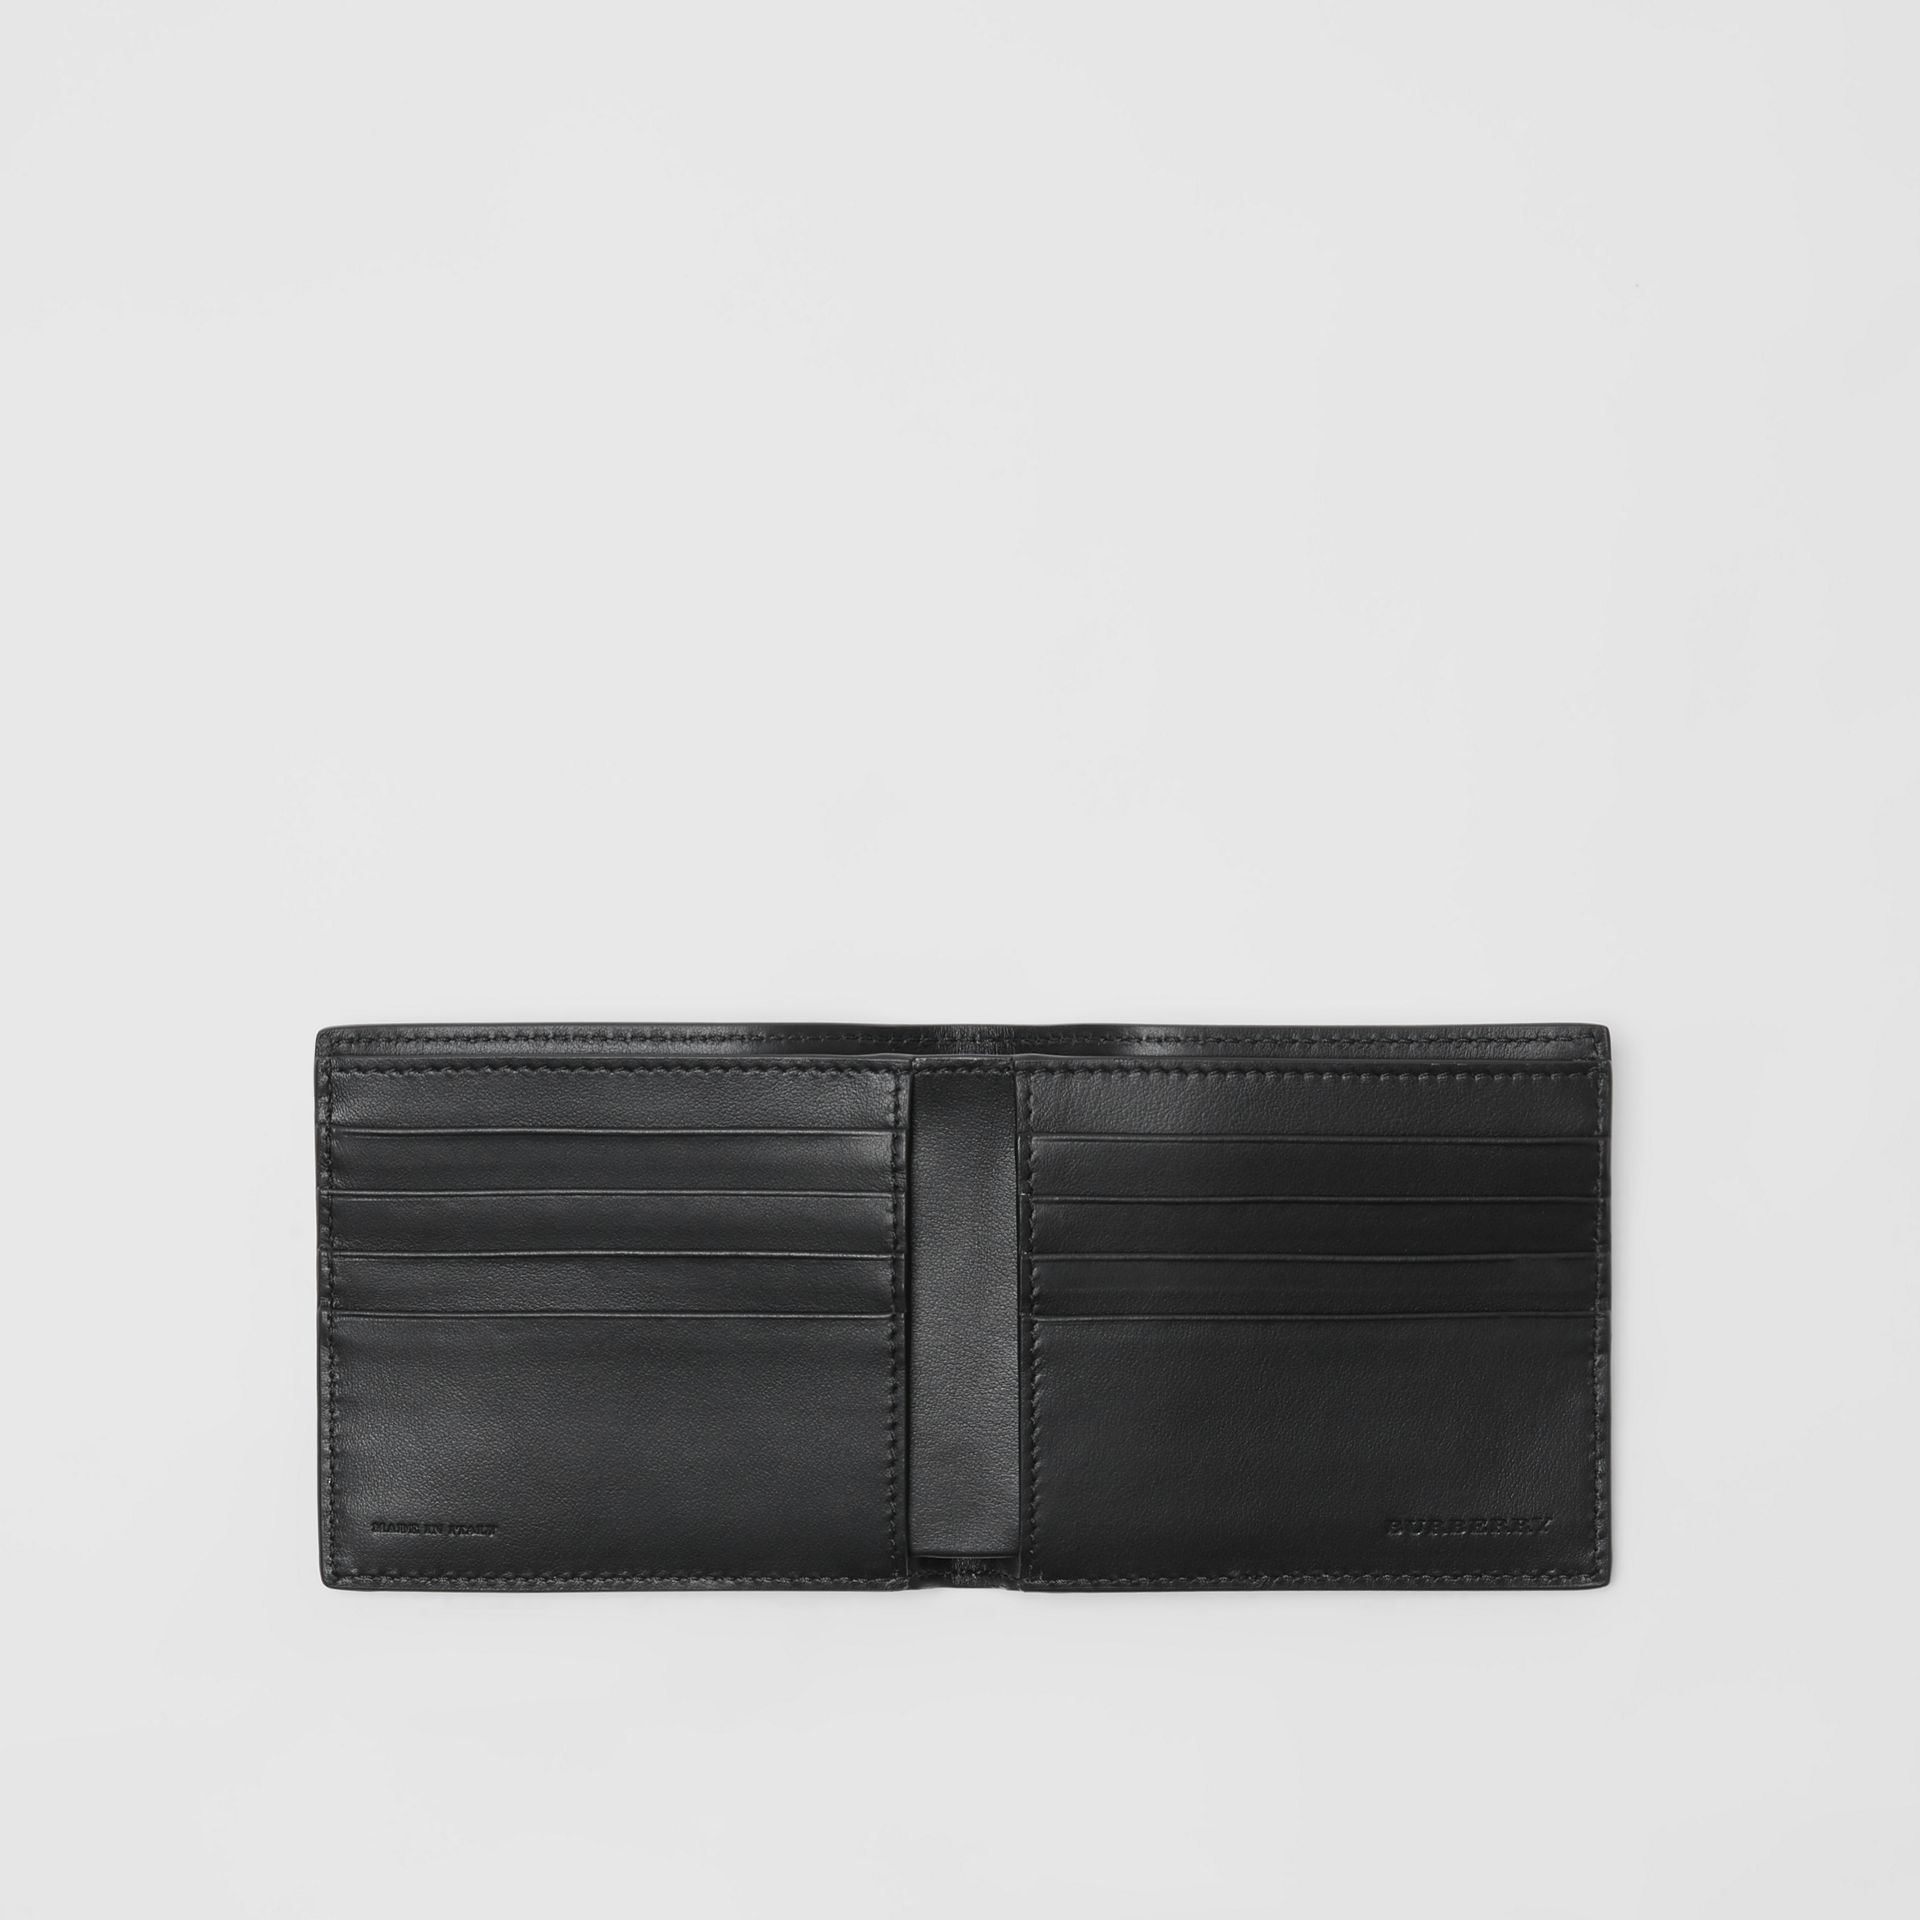 Dreamscape Print Leather International Bifold Wallet in Black/white - Men | Burberry - gallery image 3